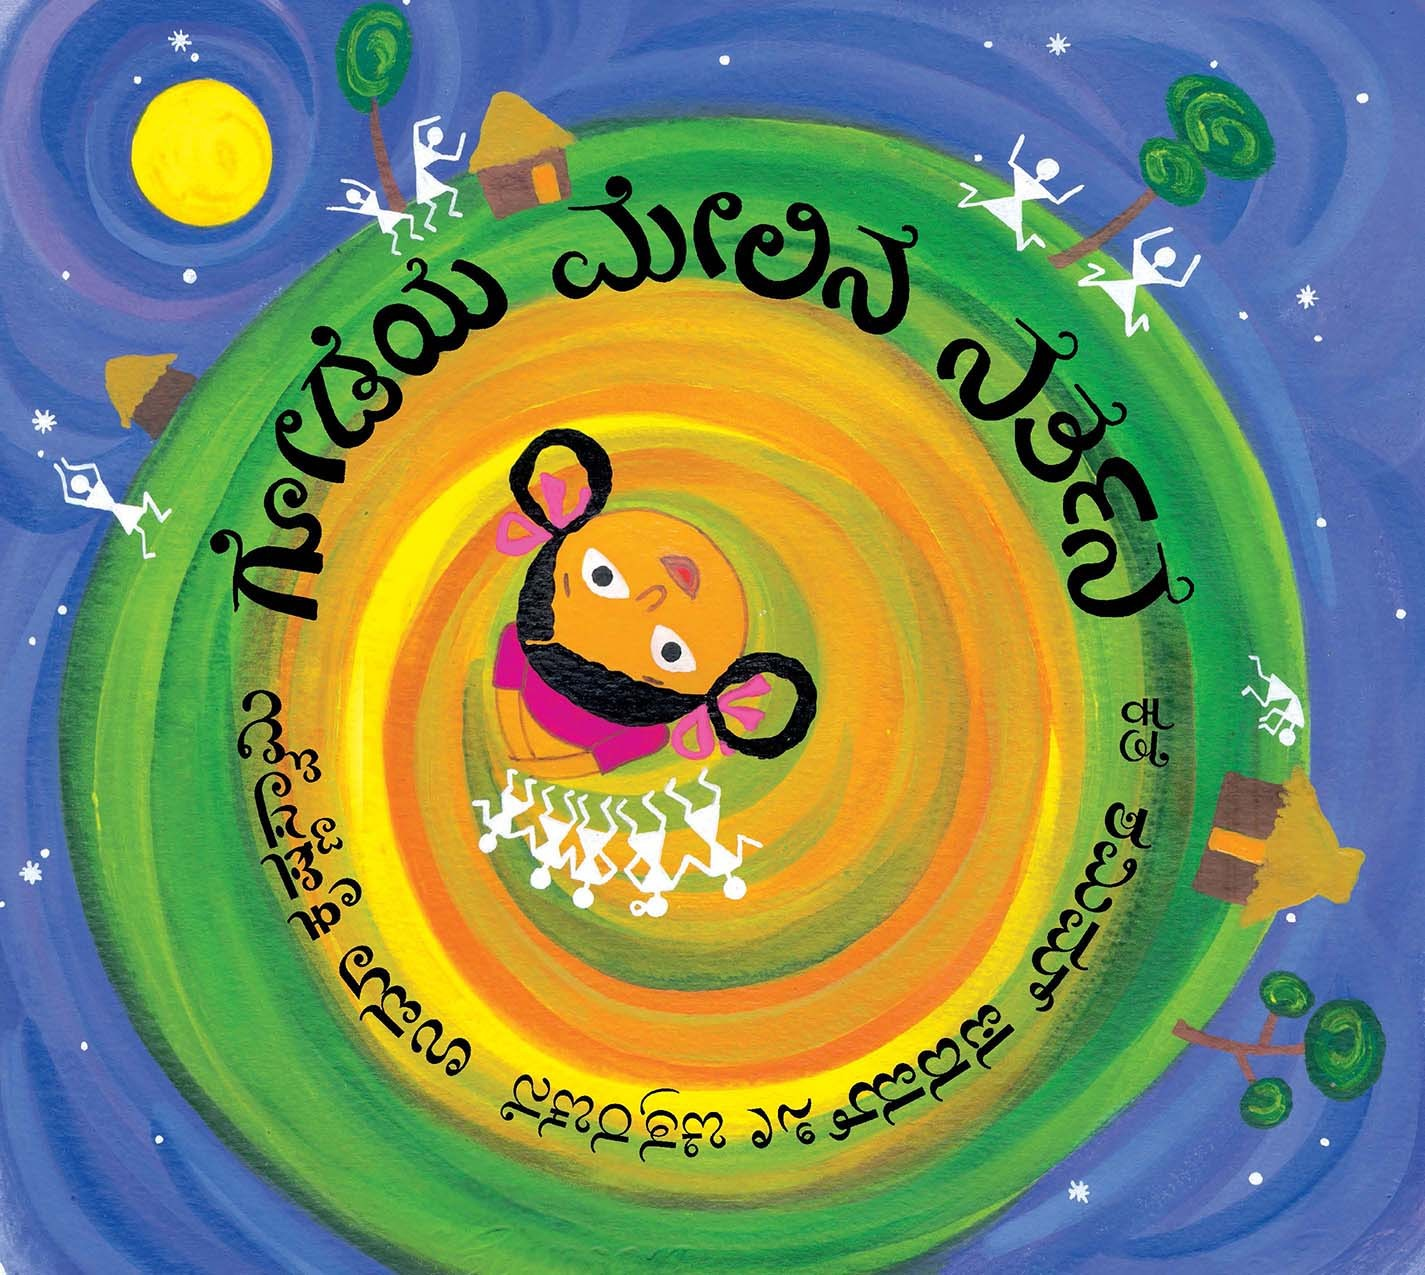 Dancing On Walls/Godeya Melina Nartana (Kannada)